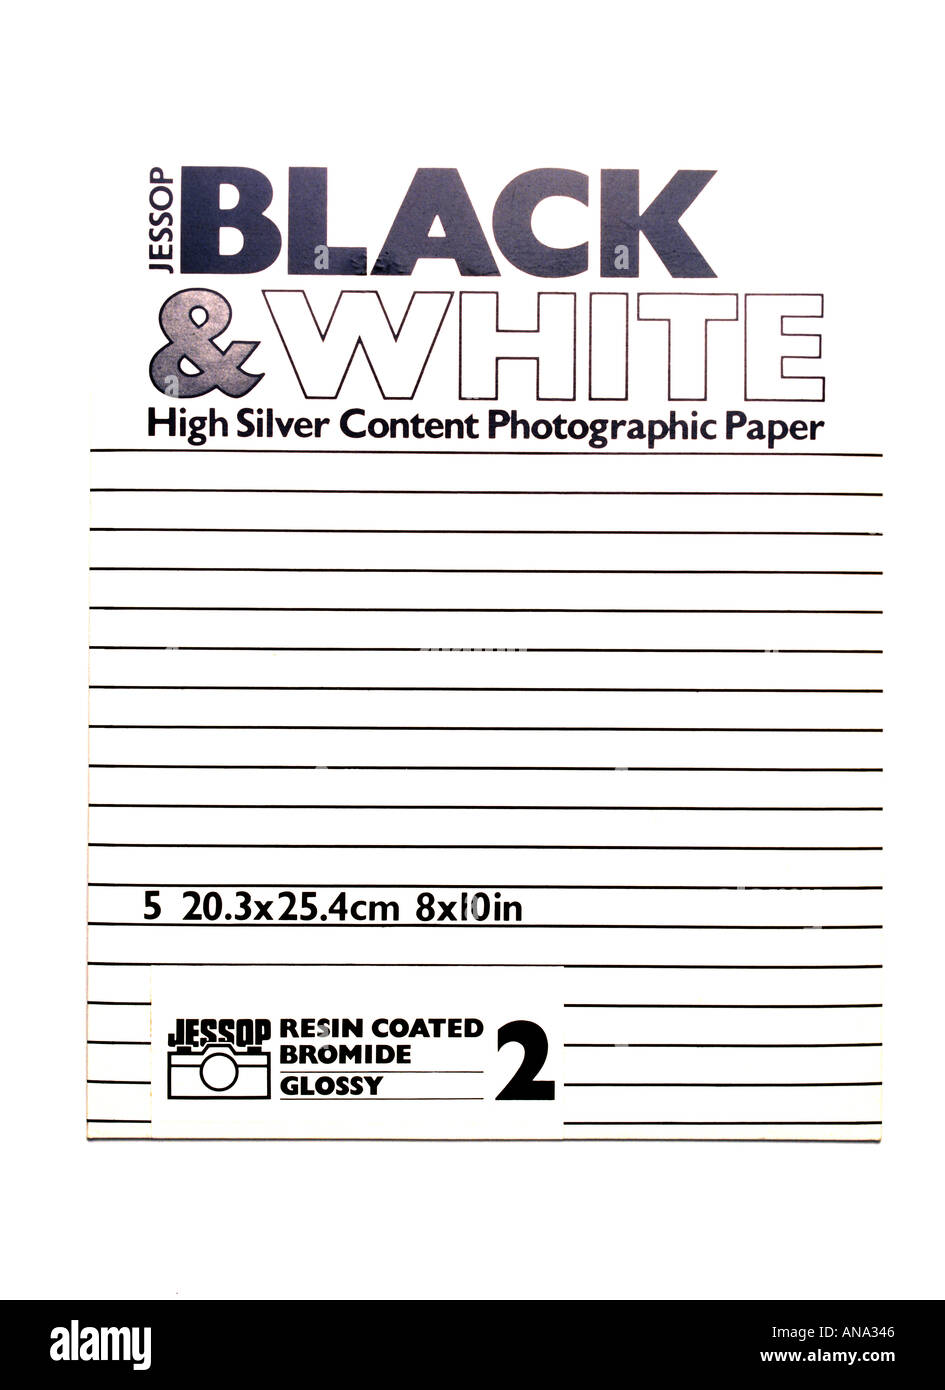 a packet of black and white photographic paper containing silver - Stock Image